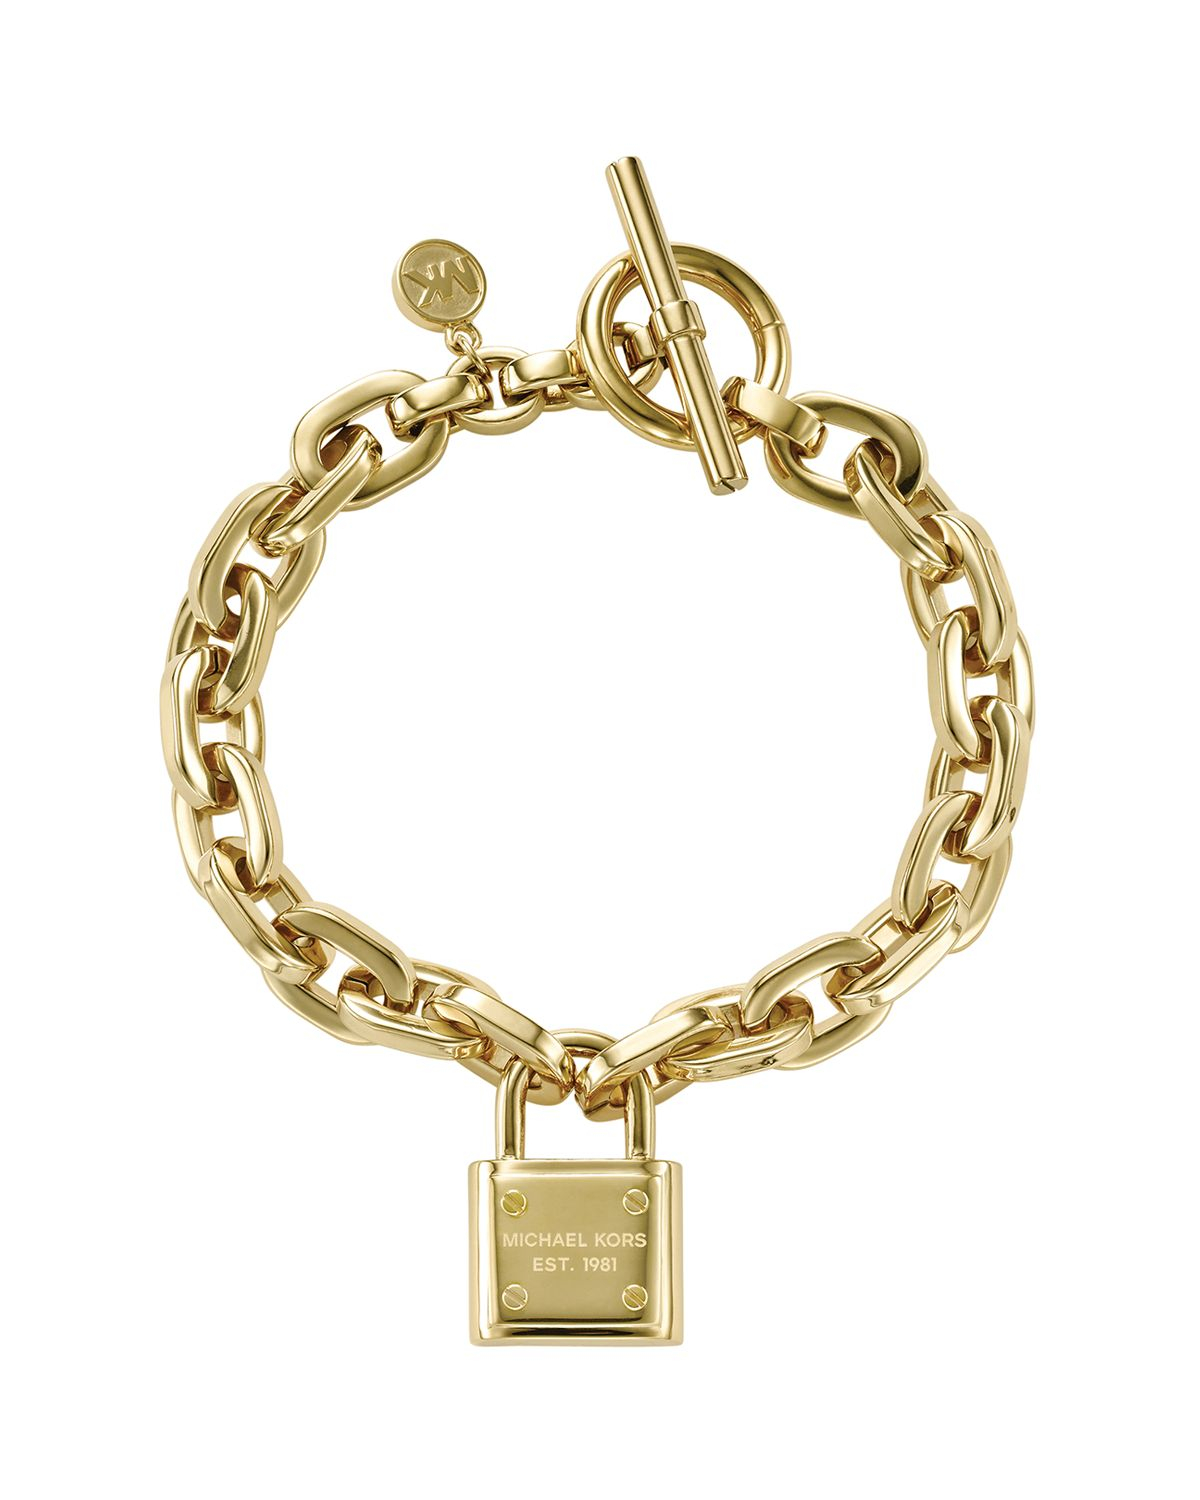 michael kors chain link padlock toggle bracelet in gold lyst